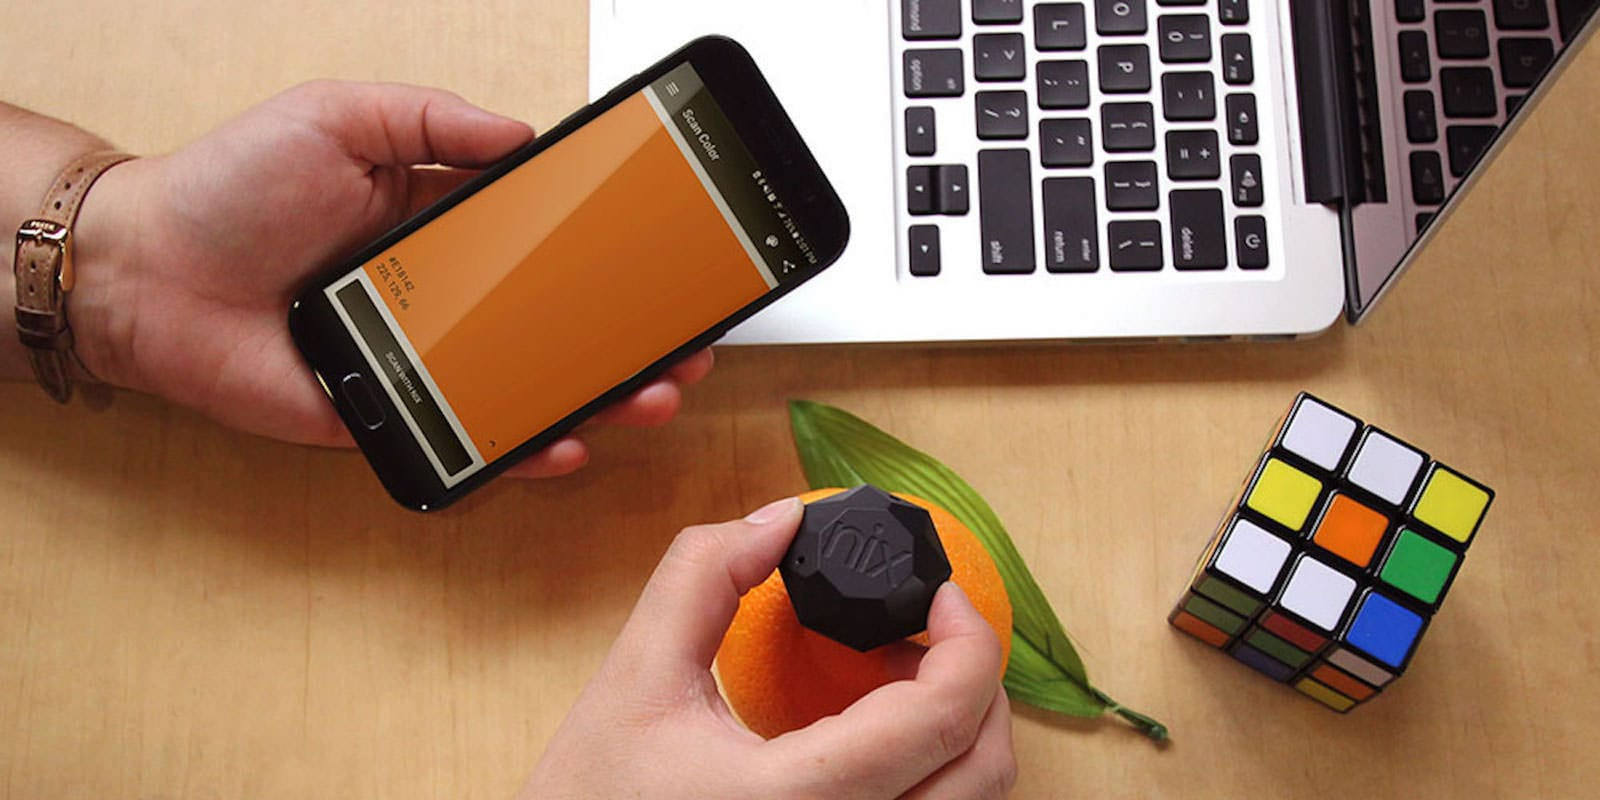 This ping pong ball-sized sensor offers precise color codes for paint or digital use.